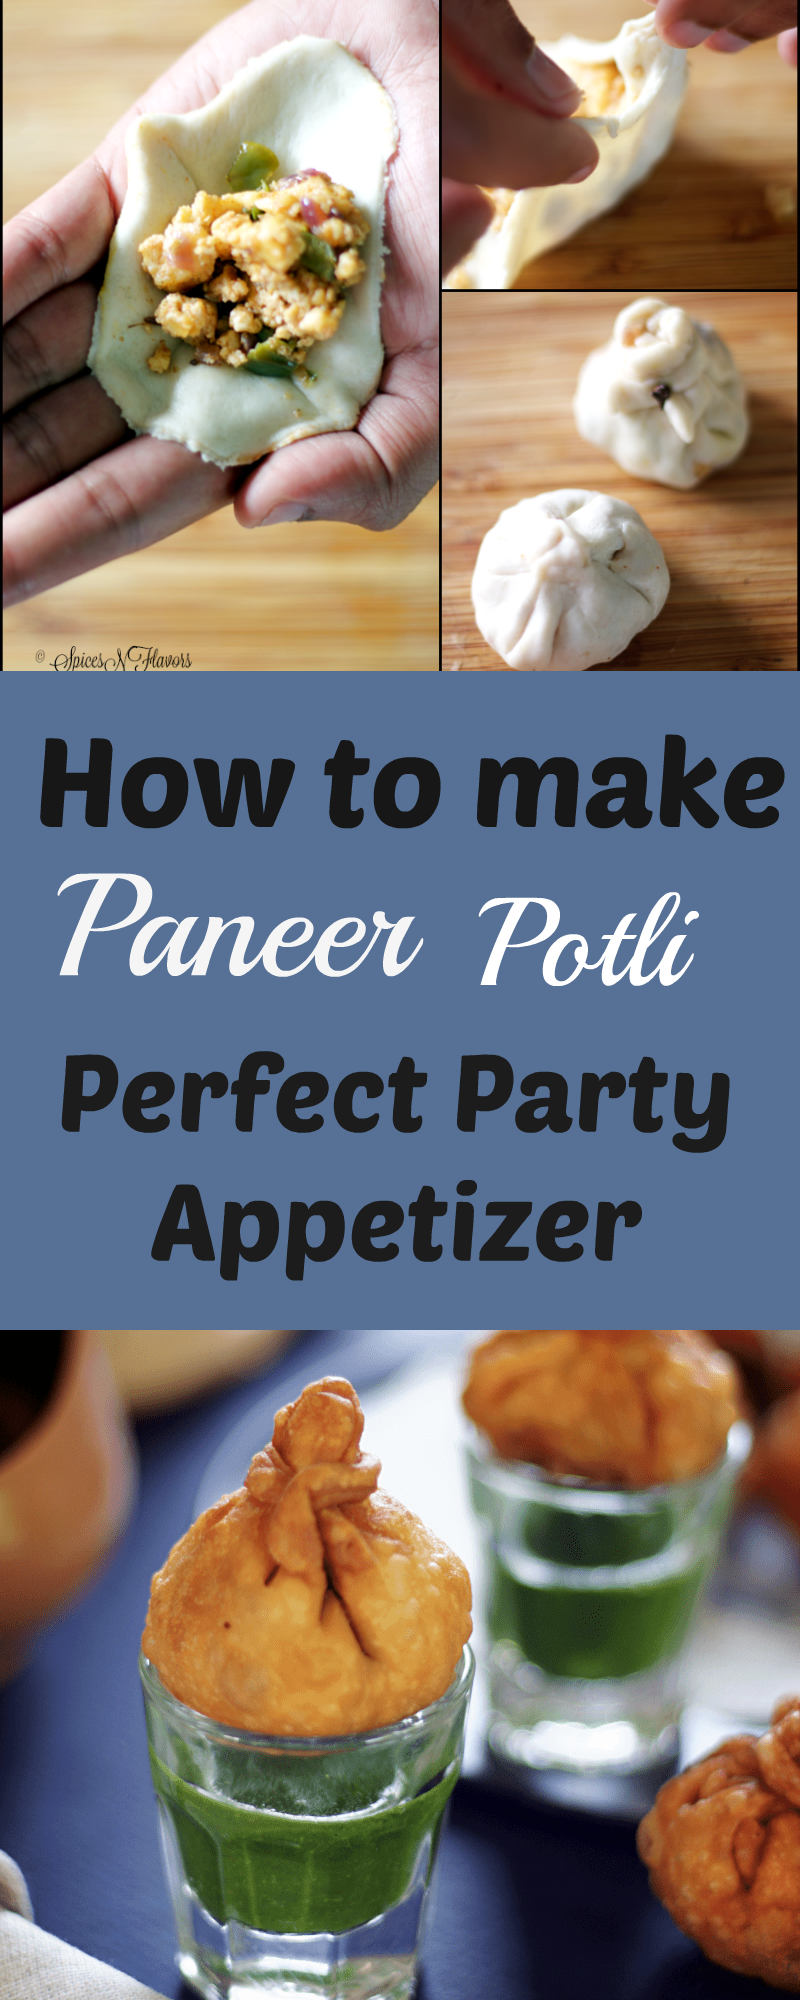 Paneer potli party appetizer starter recipe party appetisers paneer potli party appetizer starter indian appetizersparty appetizersappetizer recipesindian party food forumfinder Gallery